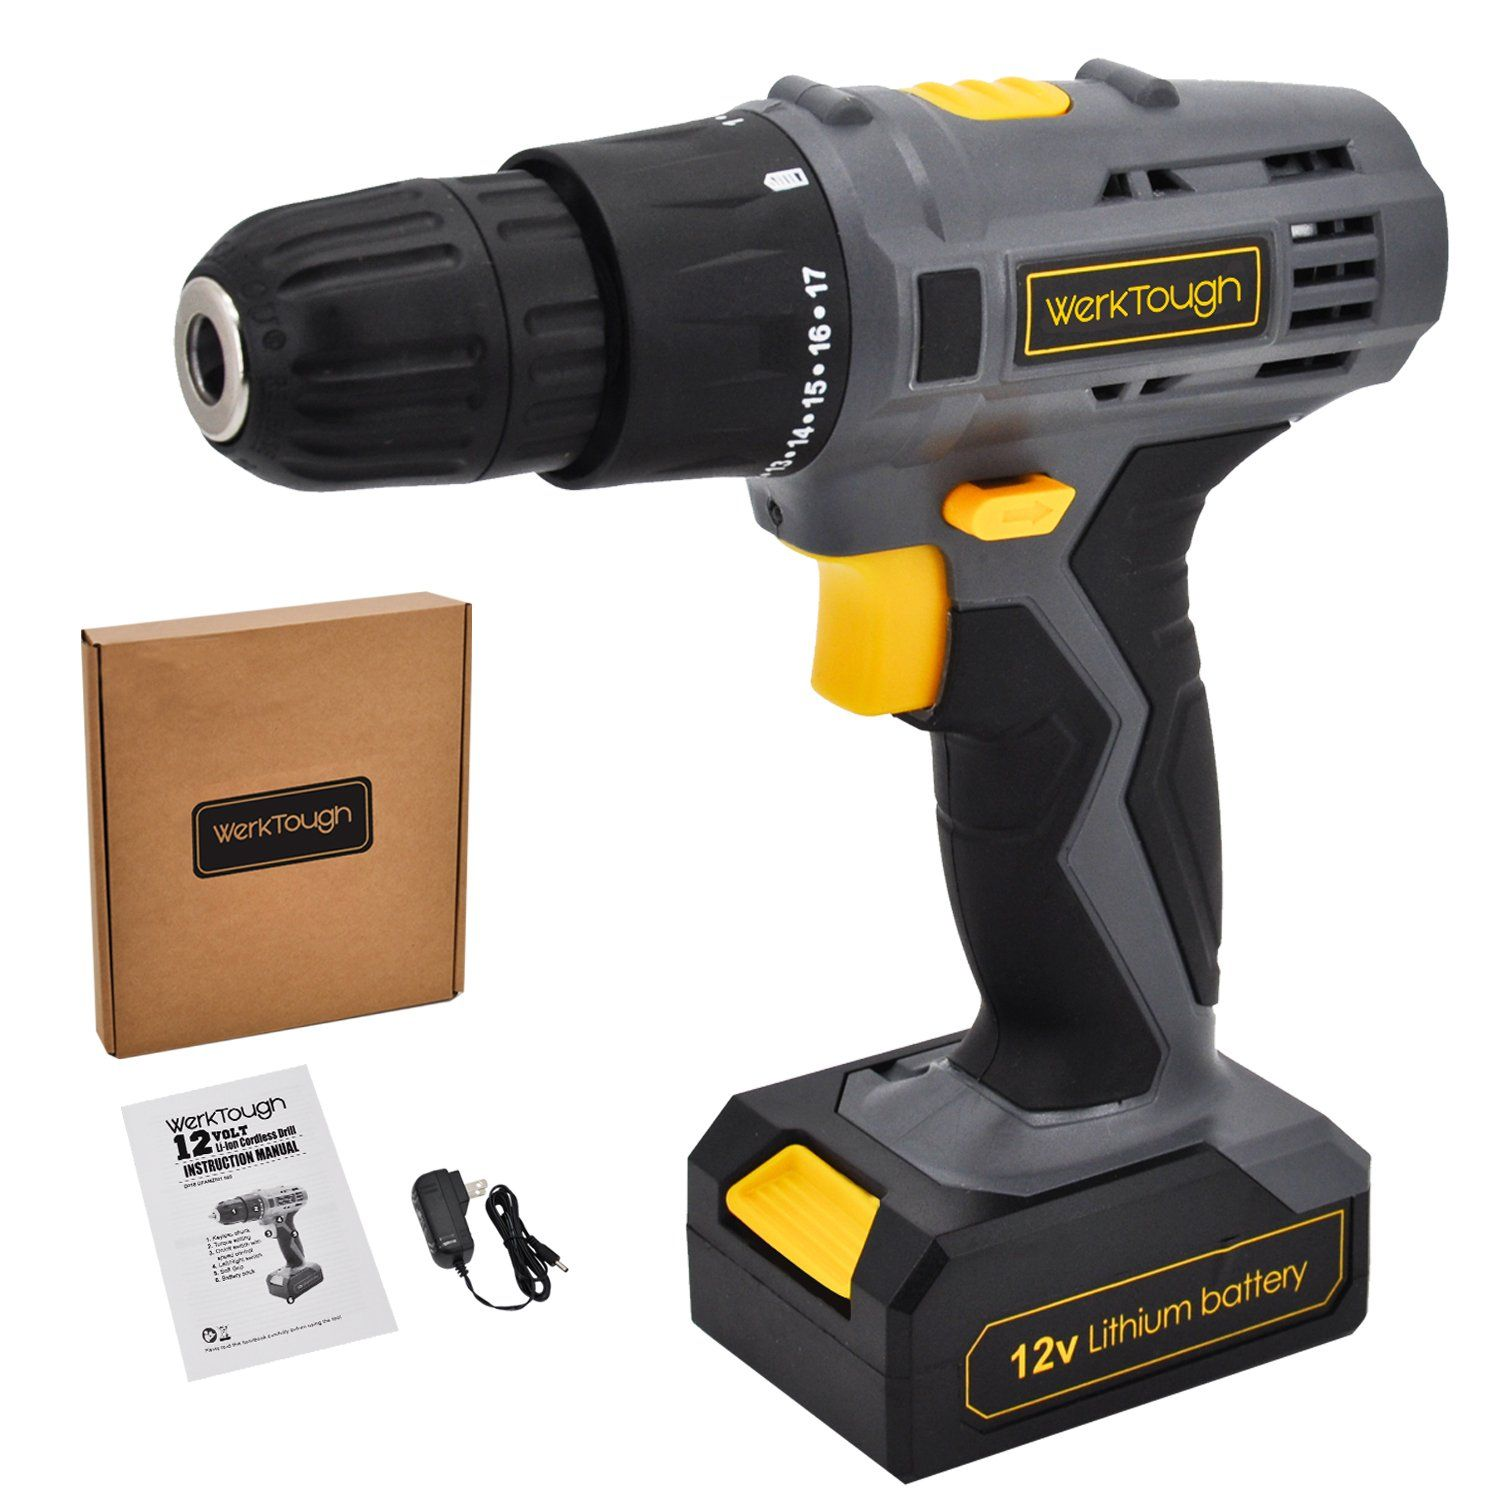 Werktough D018 12v Cordless Drill Driver Powerful Screwdriver Lion Battery With Charger To Find Out More Check Out Photo Link This Is An Affil Elettronica